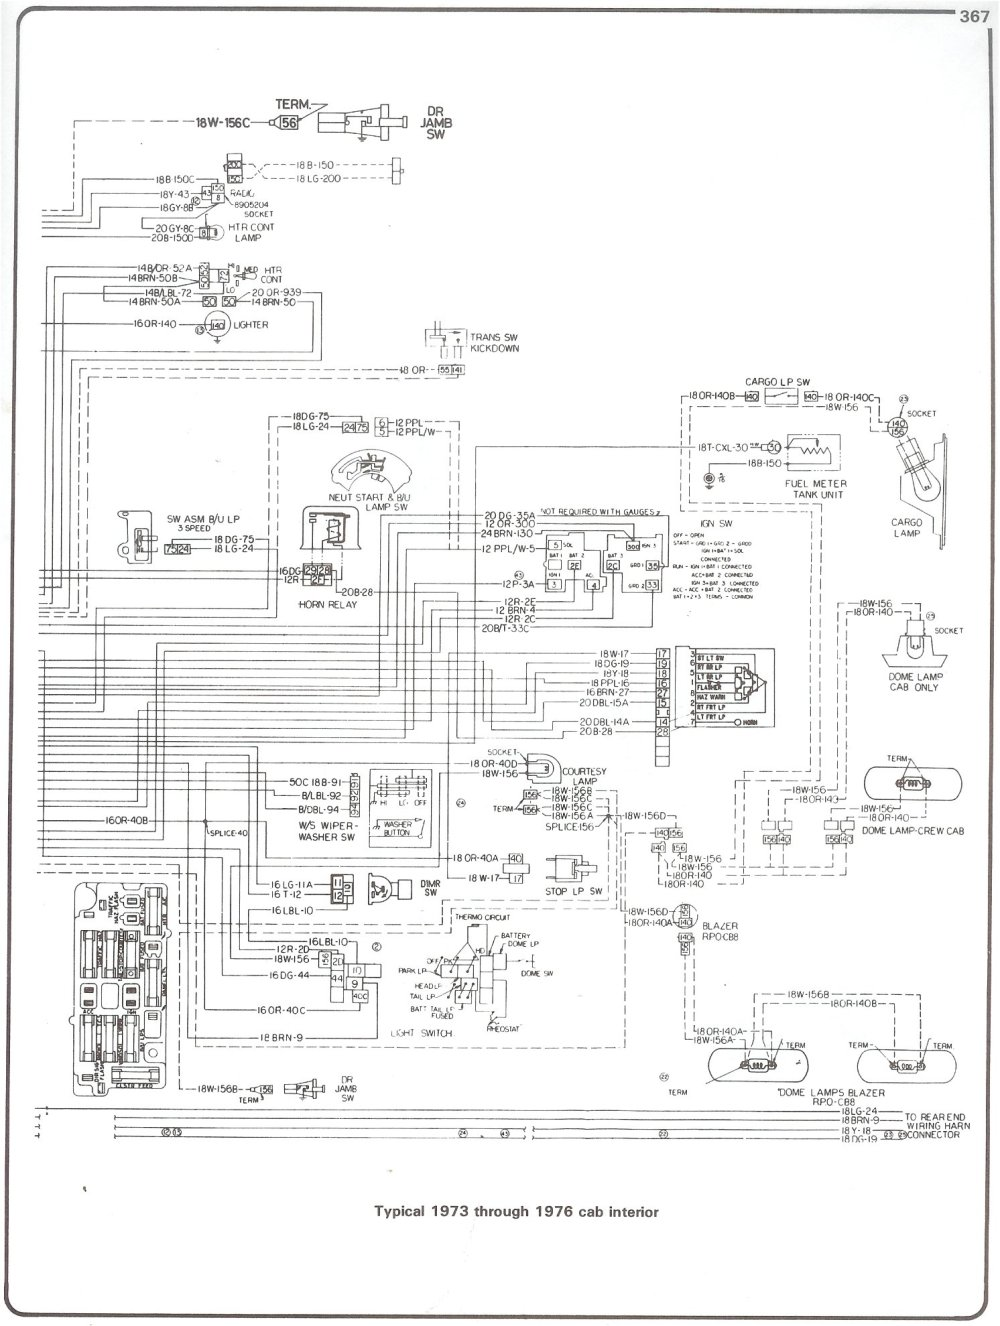 medium resolution of complete 73 87 wiring diagrams1987 chevy pickup wiring diagram 2